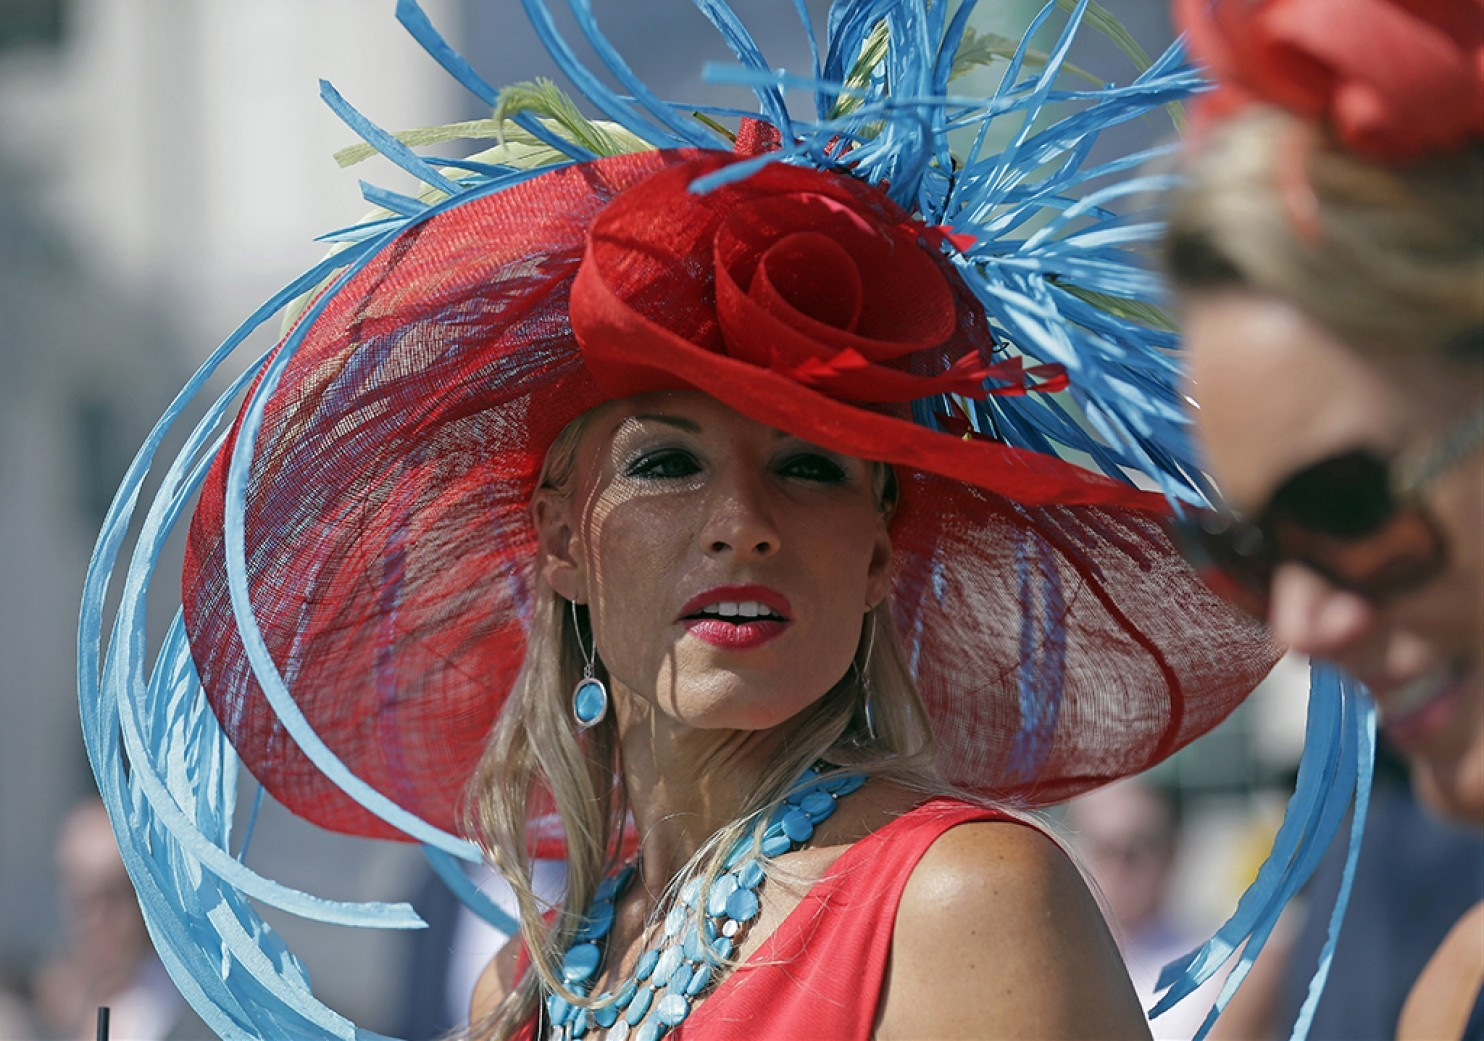 Nichole Whelan in a red hat with blue feathers for the Kentucky Derby